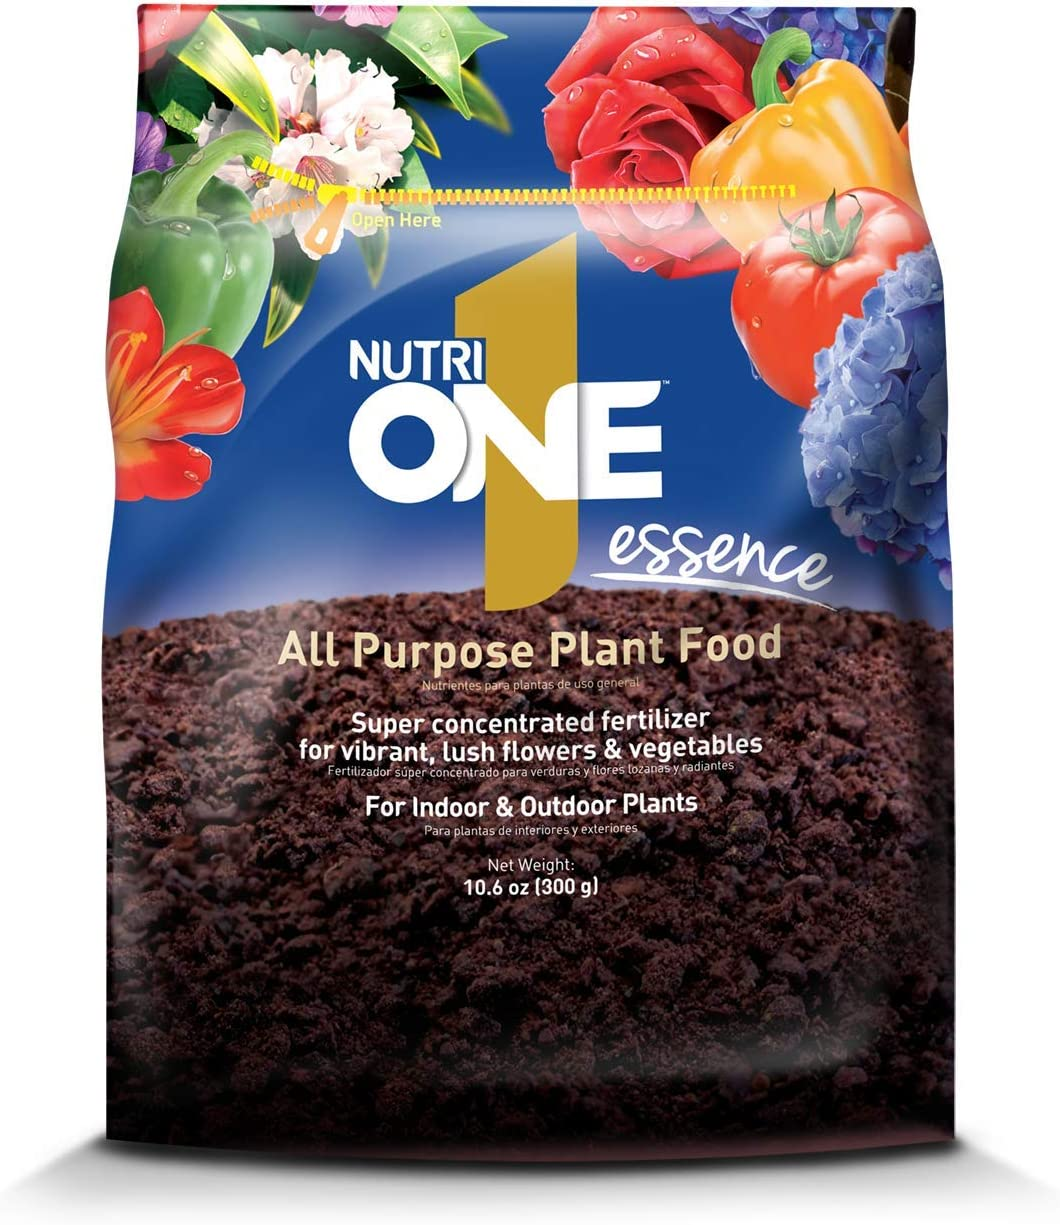 NutriONE 710200A All Purpose Food Essence for Indoor & Outdoor Plants, Flowers & Vegetables, 10.6 Oz, Concentrate